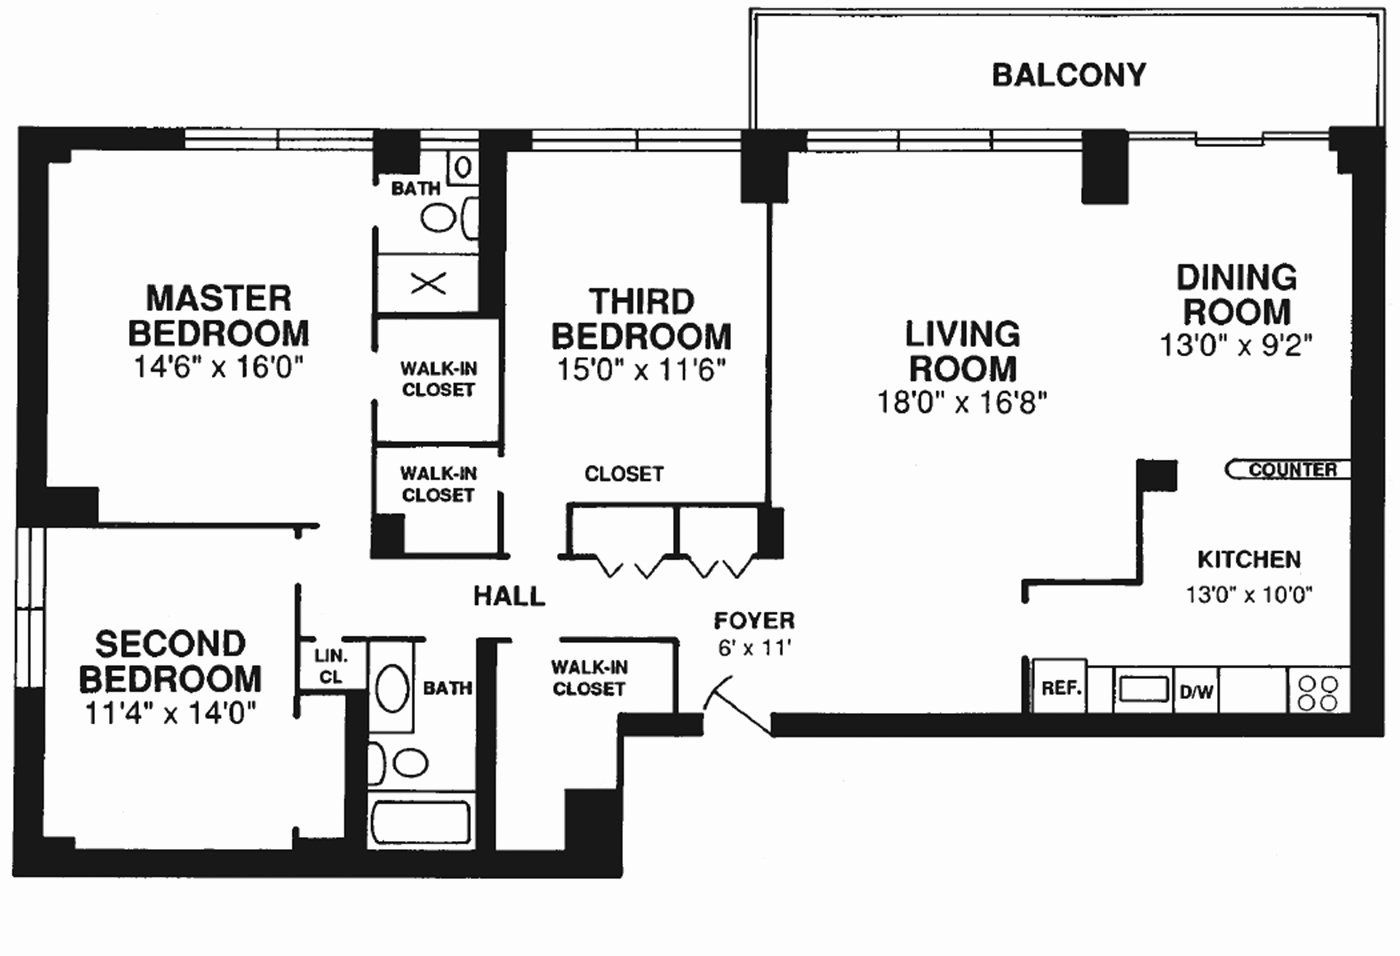 Free Floor Plan Template Luxury 20 Unique Free Floor Plan Templates House Plans Free Floor Plans Floor Plans Project Planning Template